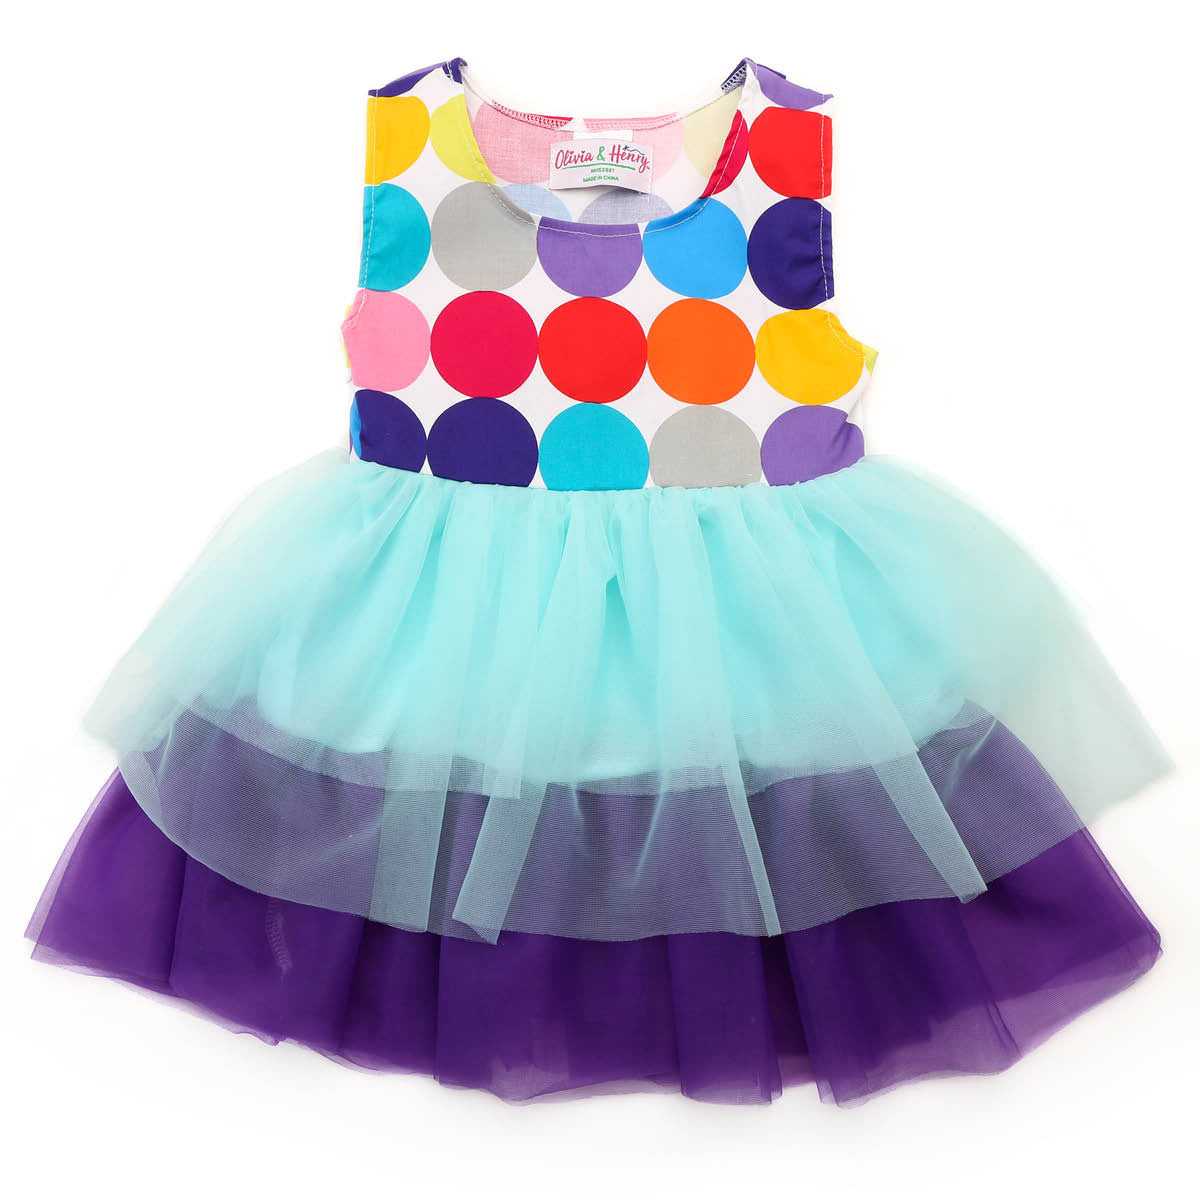 Little Girl\'s Blue and Purple Party Dress | oliviaandhenry.com